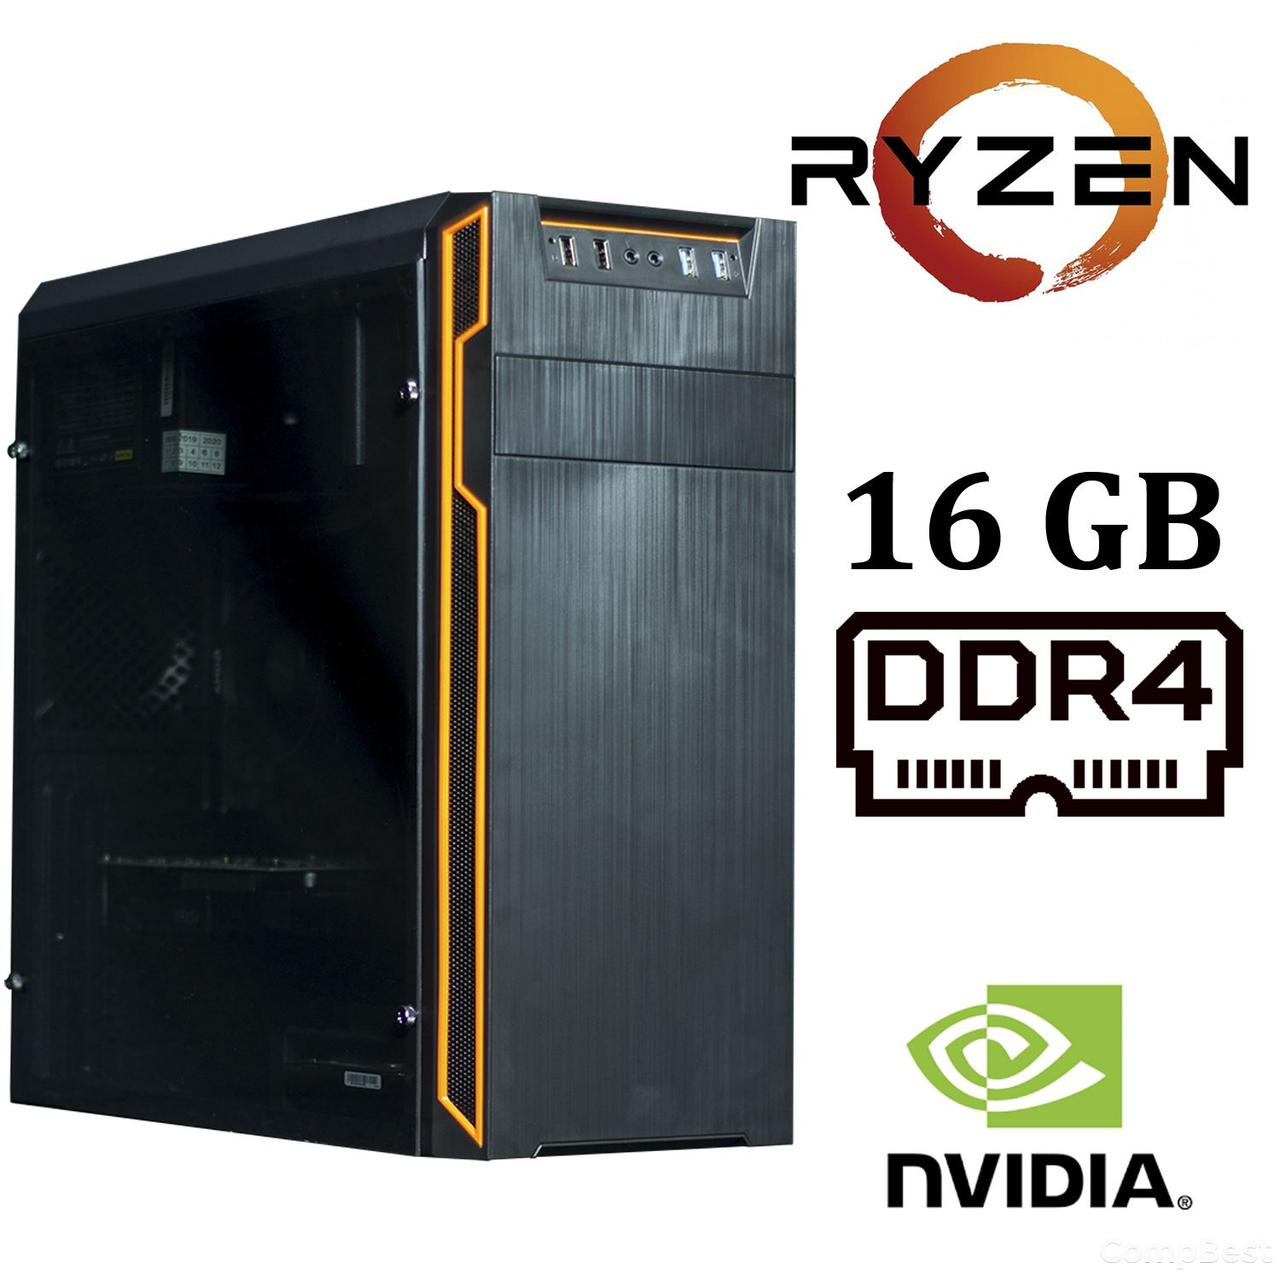 Frontier HAN SOLO orange MT / AMD Ryzen™ 7 1700 (8 (16) ядер по 3.0 - 3.7 GHz) / 16 GB DDR4 / 120GB SSD+1000 GB HDD / GeForce GTX 1060 (6 GB GDDR5 192